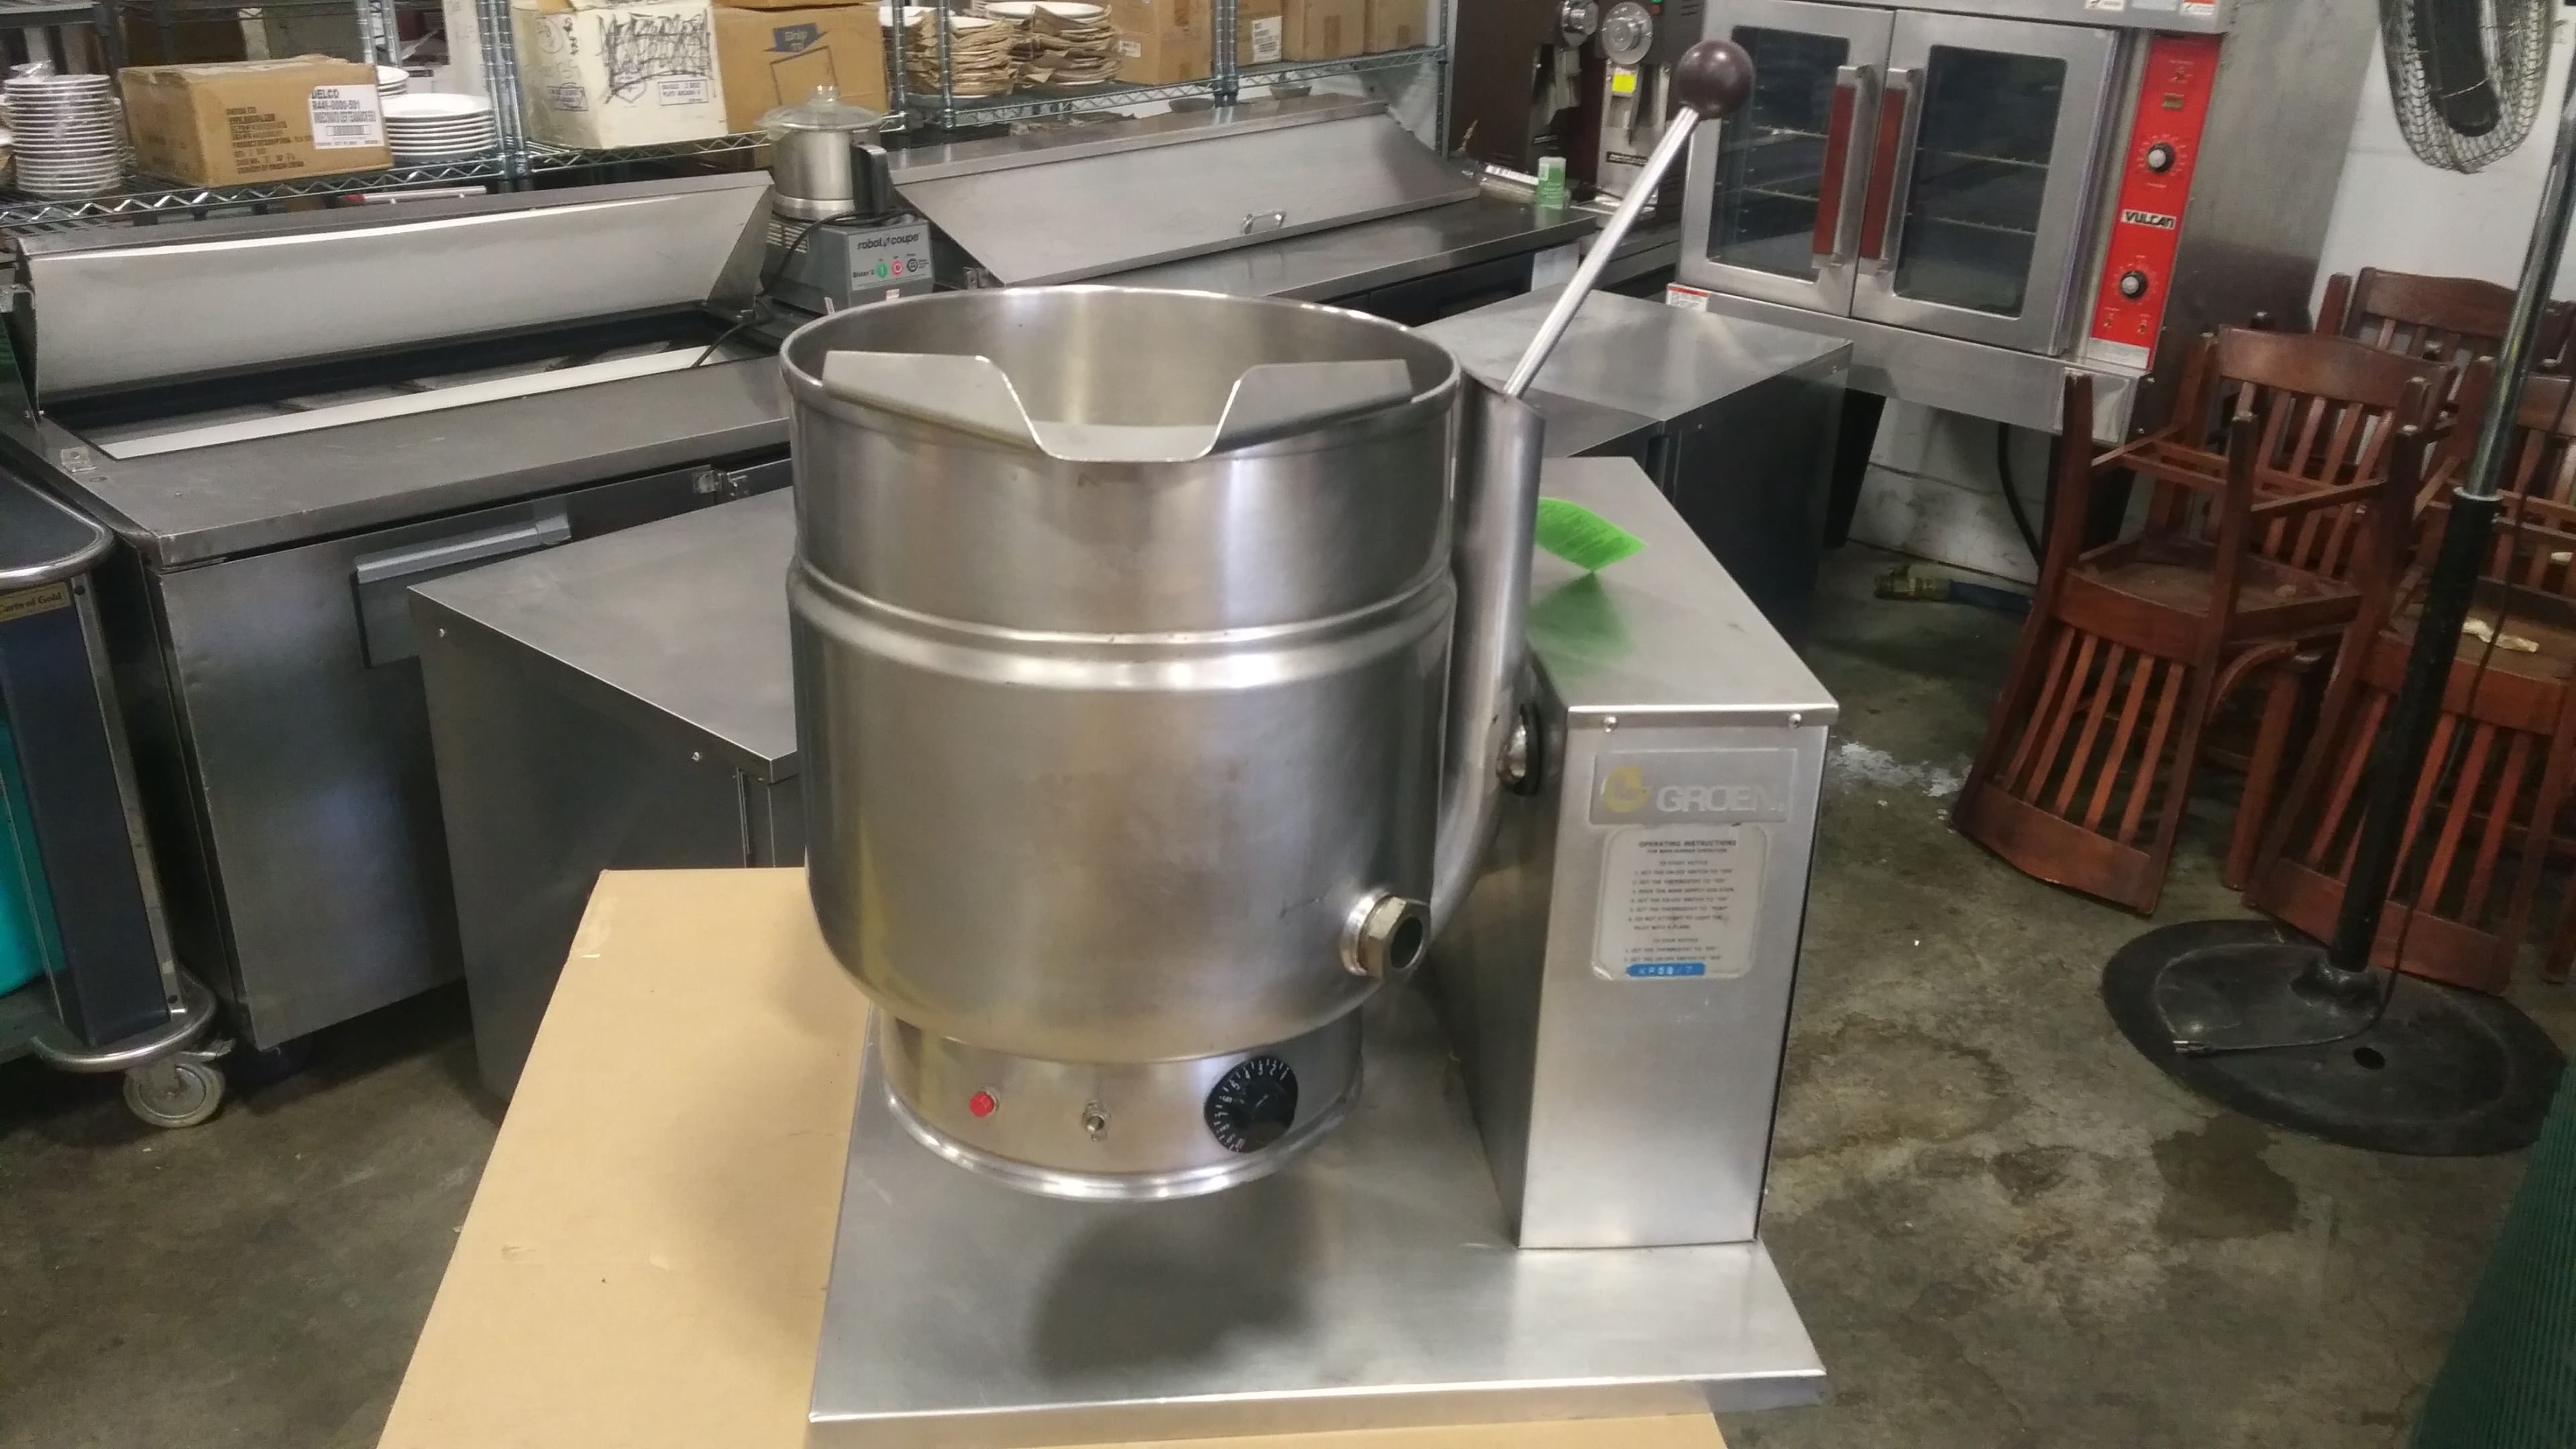 Lot 32 - Groen 20qt Natural Gas Self-Contained Steam Kettle, tested/working